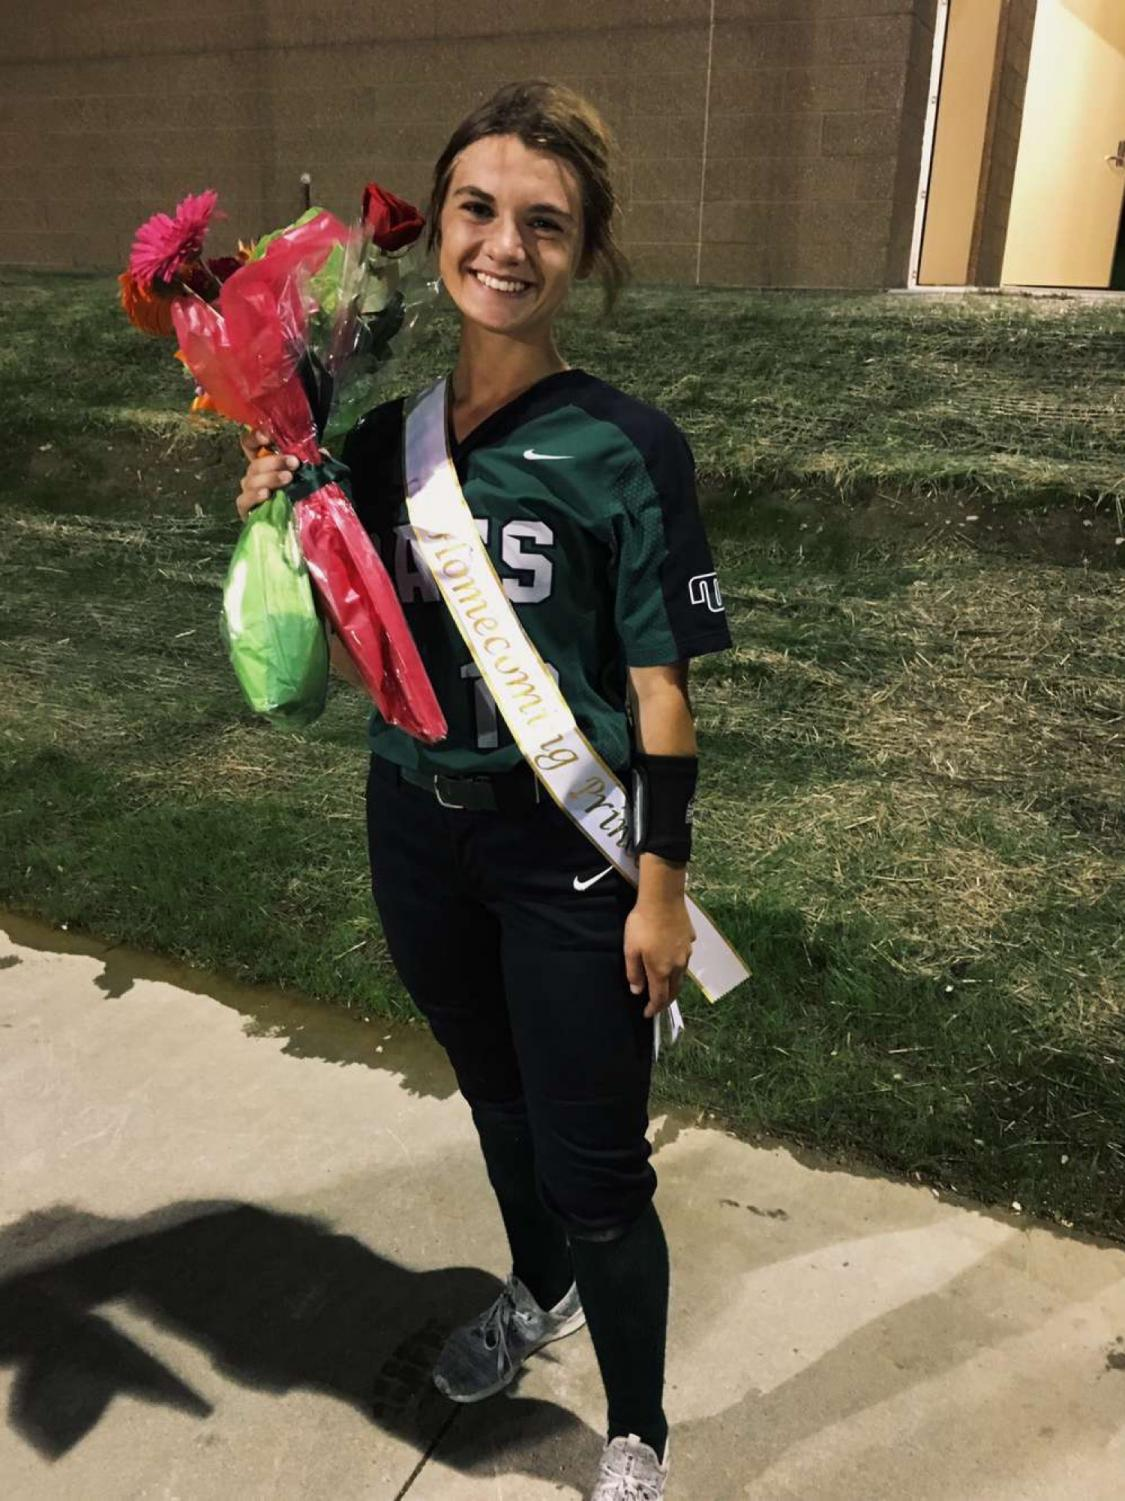 Surprised, junior Delaney Richardson finds out she won Homecoming Princess after her softball game. Her friends and family give her flowers and sash to her which she later on wears on Homecoming night.